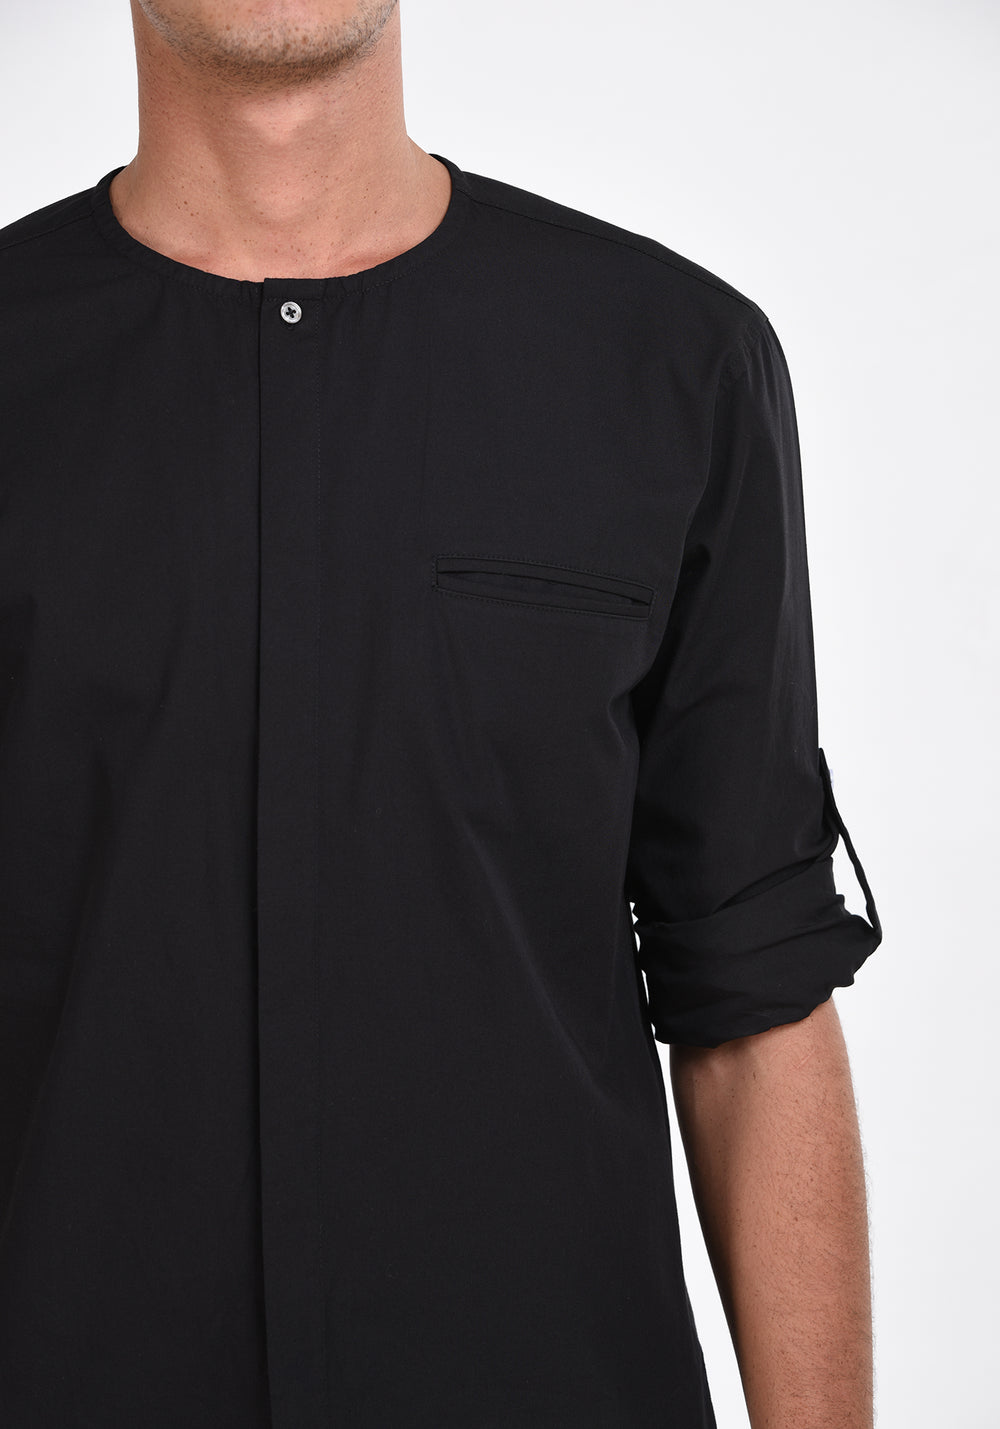 LONG SLEEVED SHIRT WITH A ROUND NECKLINE - BLACK